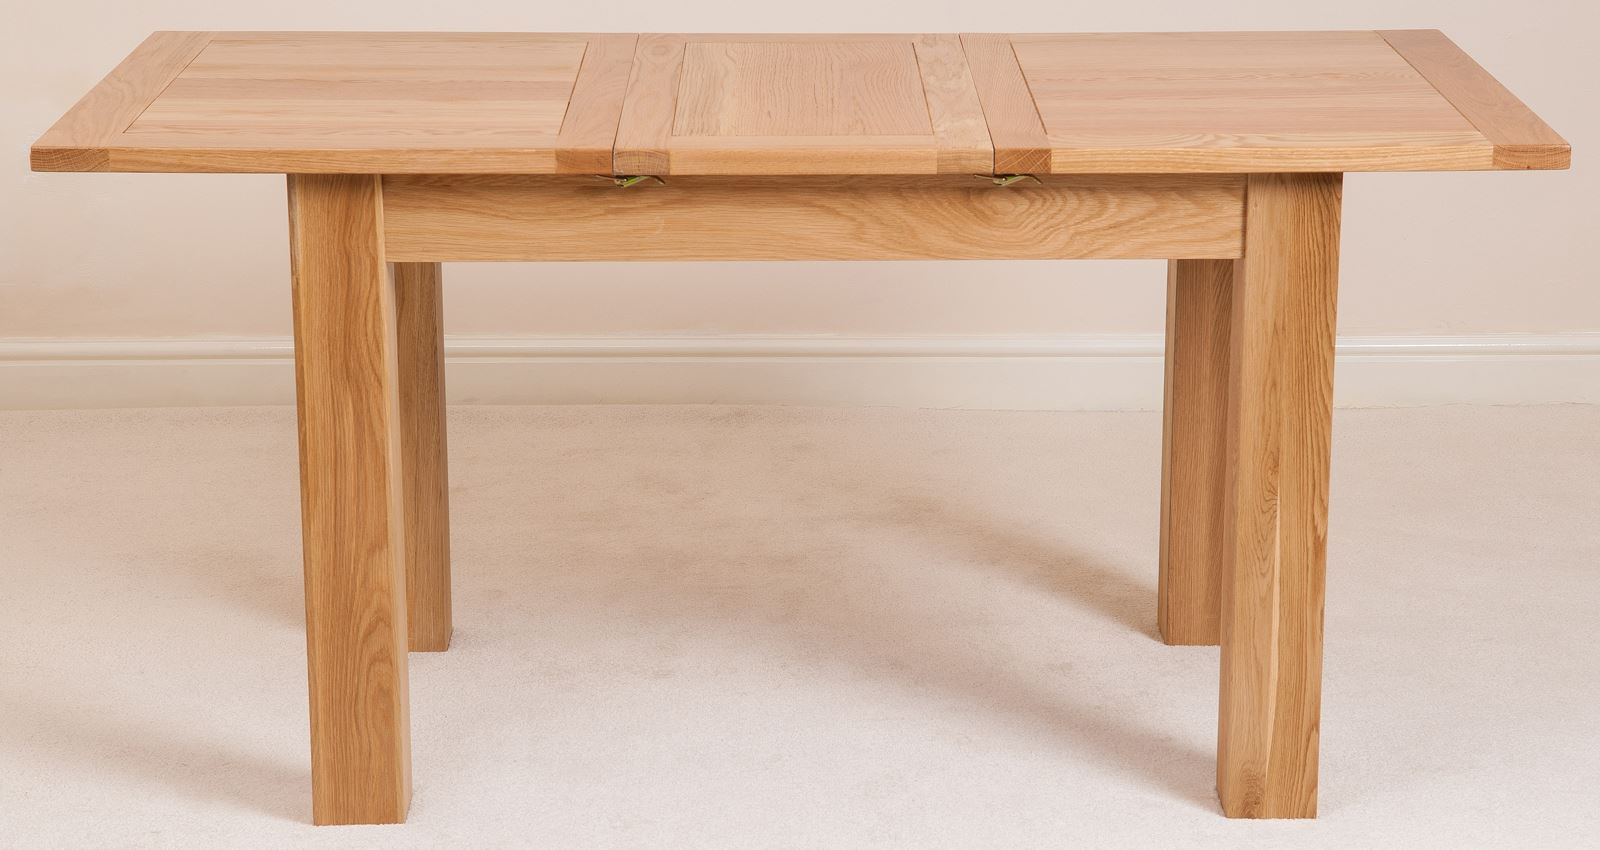 Hampton solid oak wood medium 120cm extending table wooden dining room furniture - Table 120 cm ...